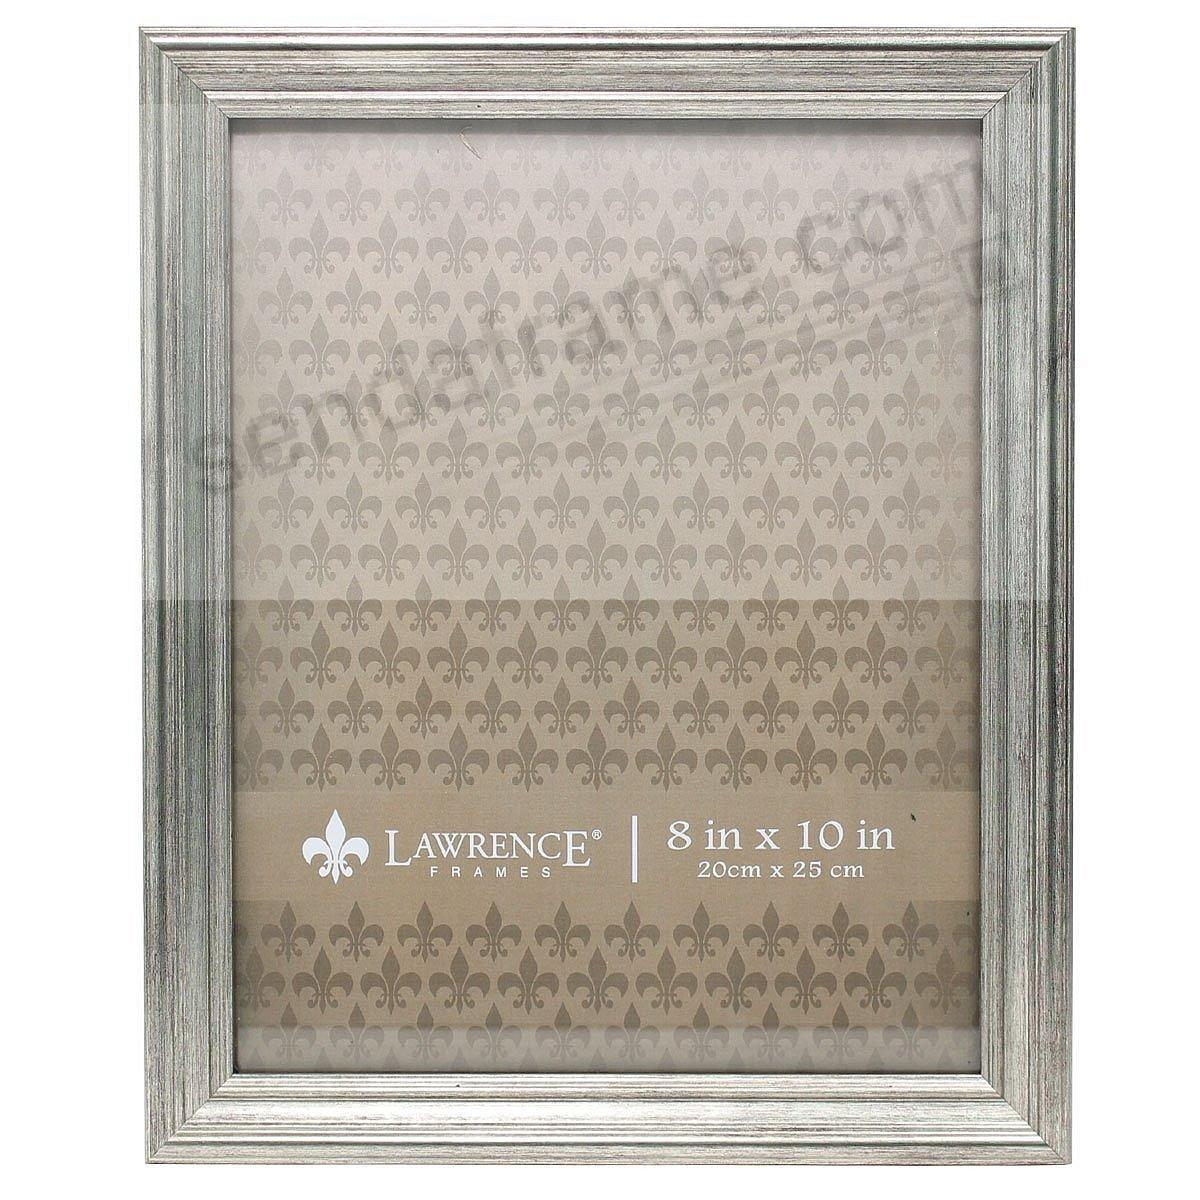 SUTTER Satin Silver composite wood 8x10 frame by Lawrence®